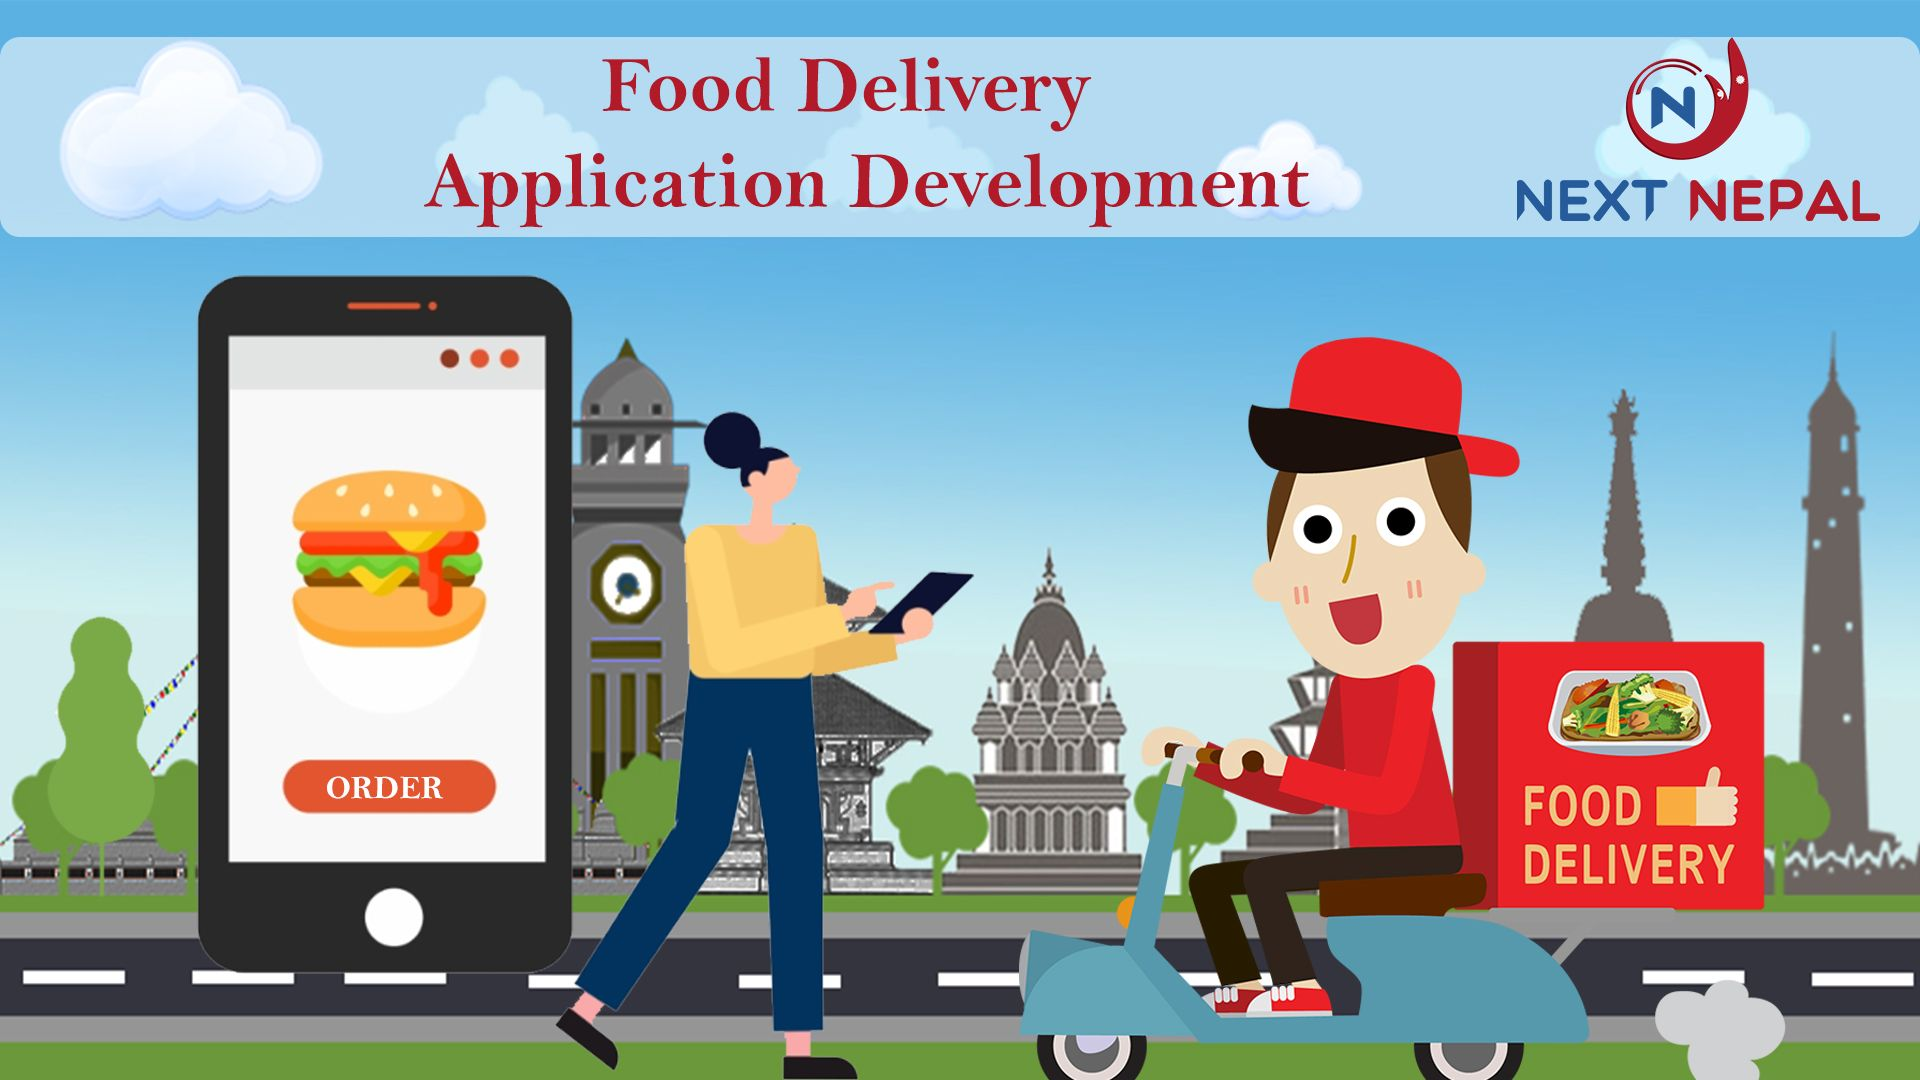 """Start your own Food Delivery Business like Swiggy, Zo"